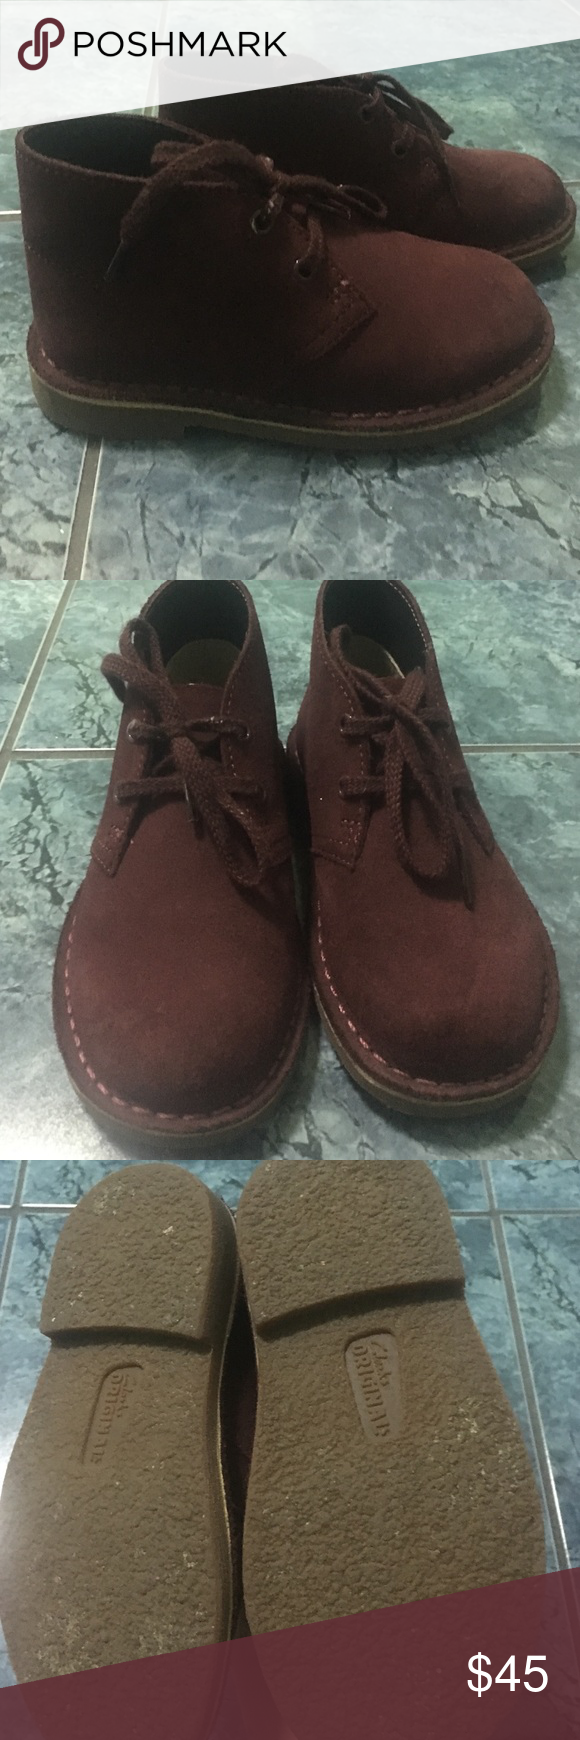 39c3b69fe3047 Clarks toddler classic desert boot Clarks classic desert boot, toddler size  8W, worn a couple times, deep burgundy color Clarks Shoes Boots